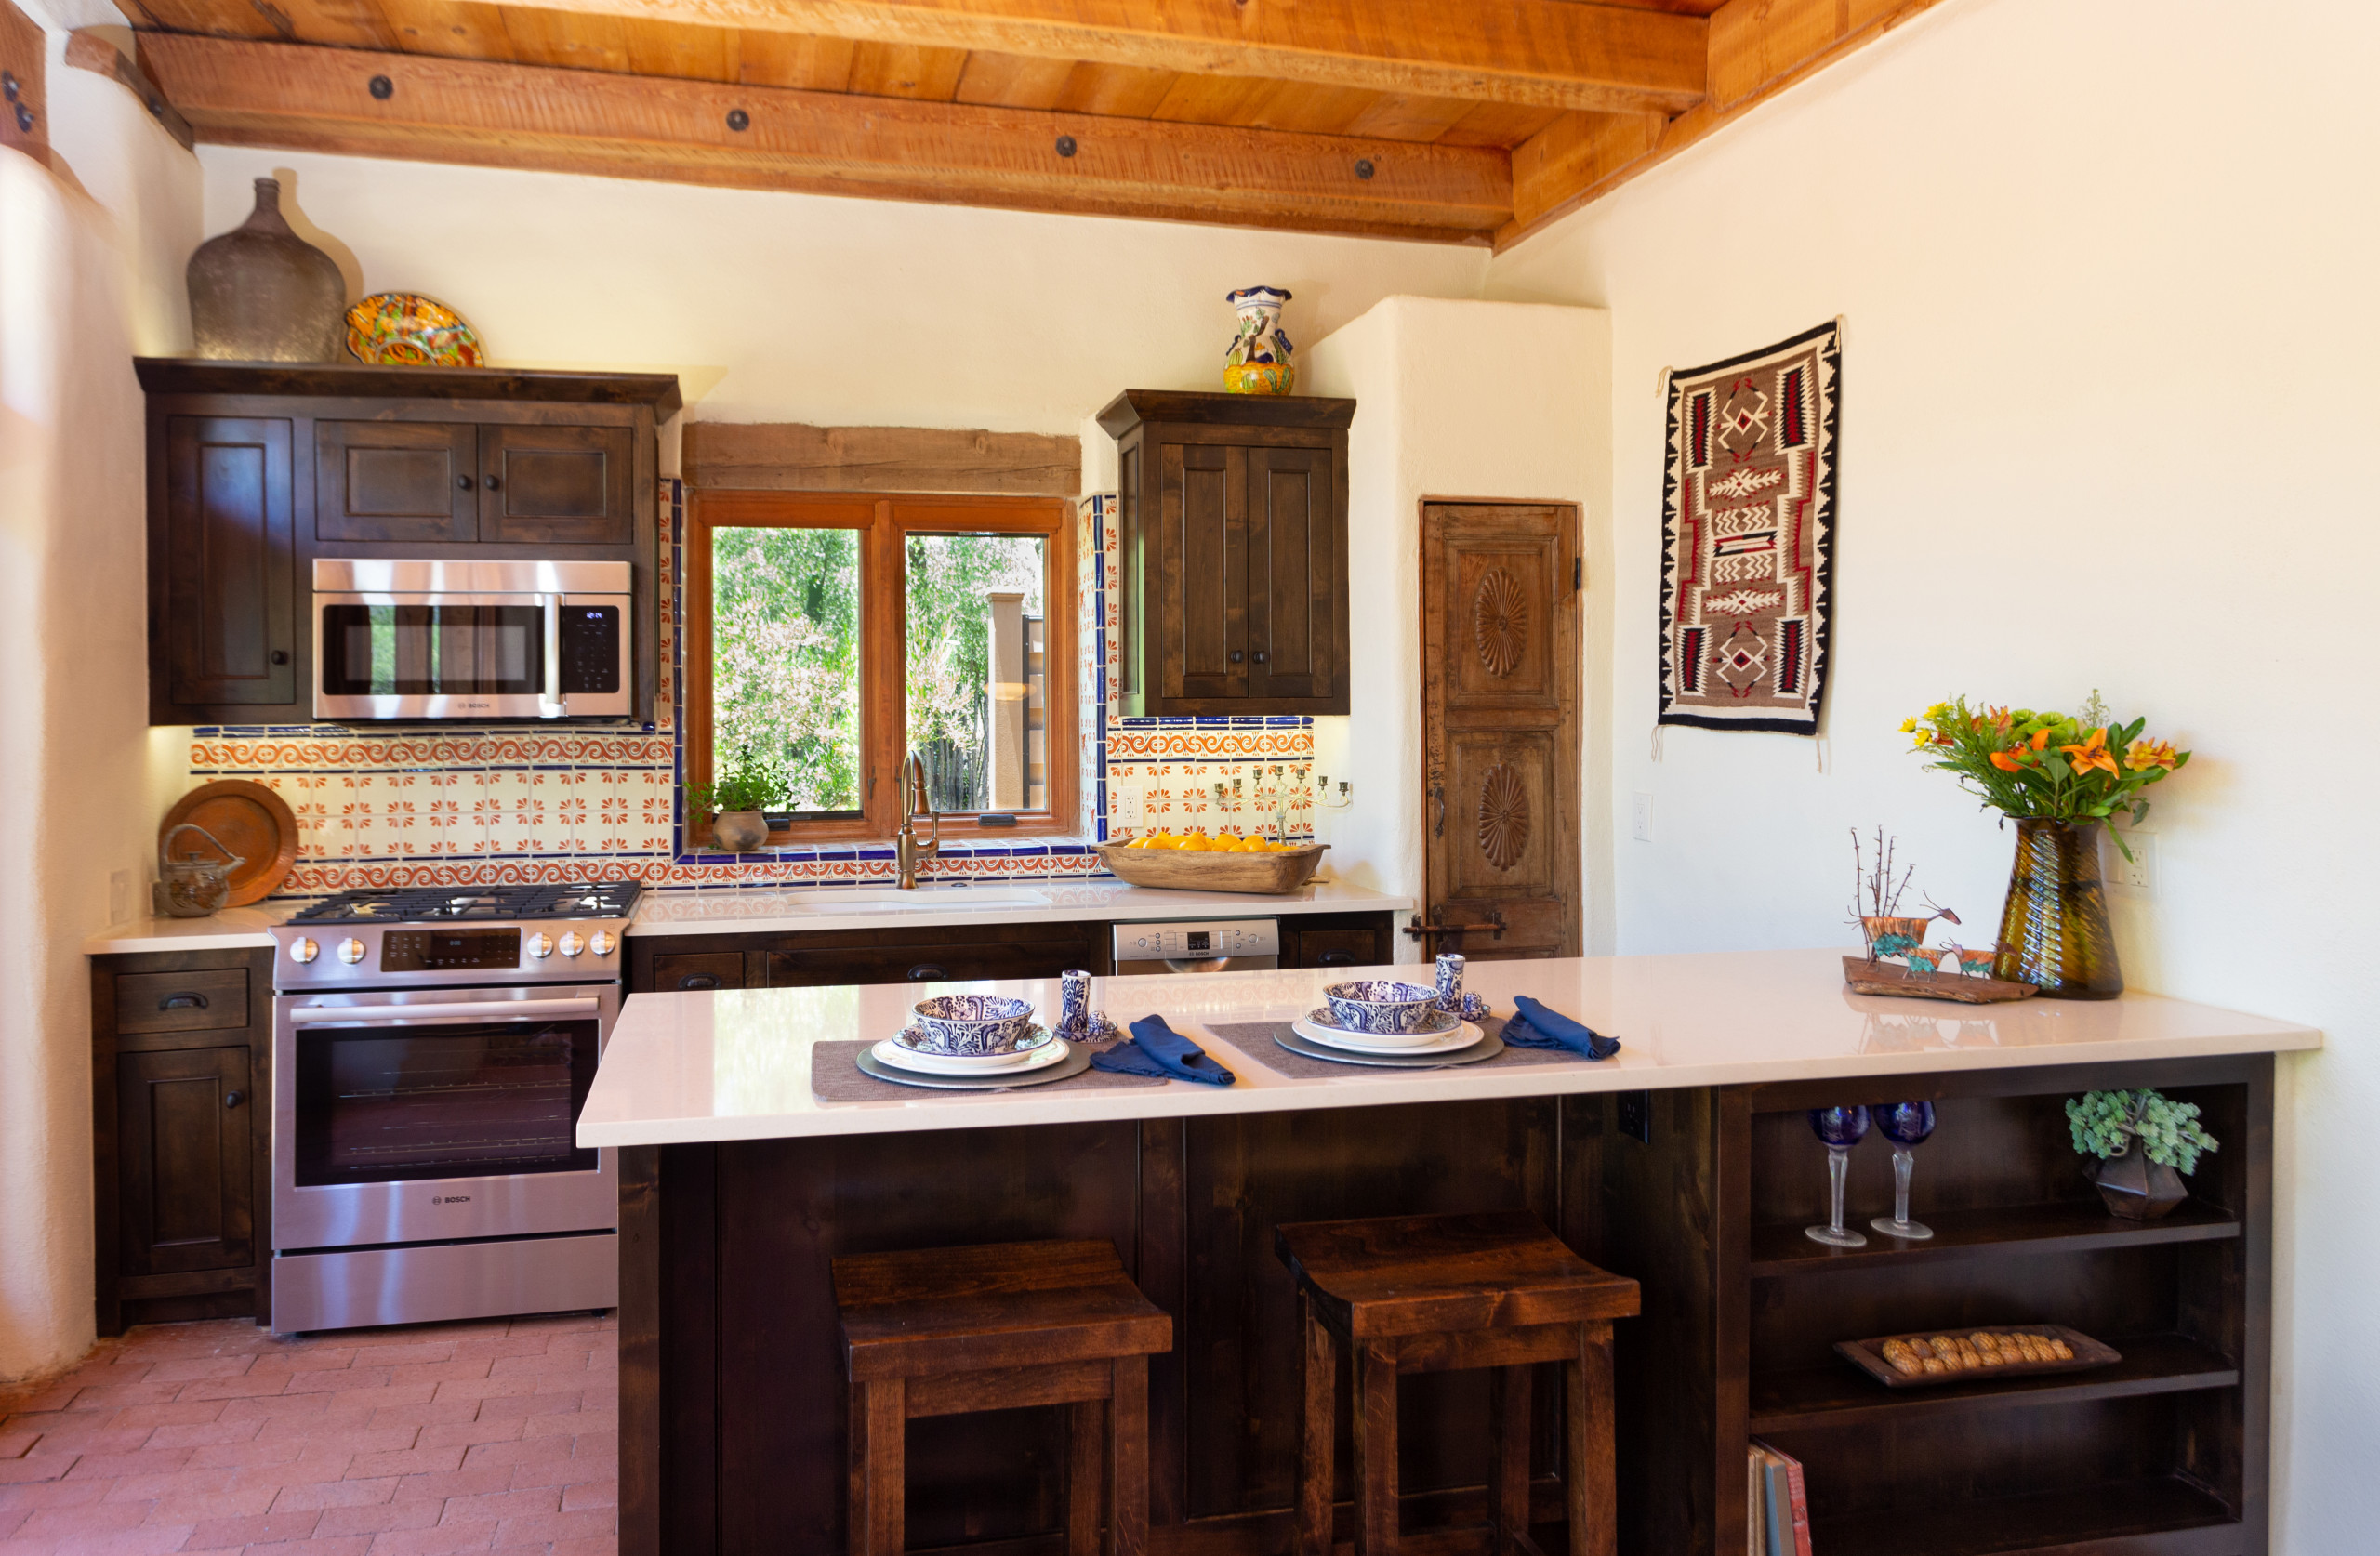 75 Beautiful Small Kitchen Pictures Ideas January 2021 Houzz